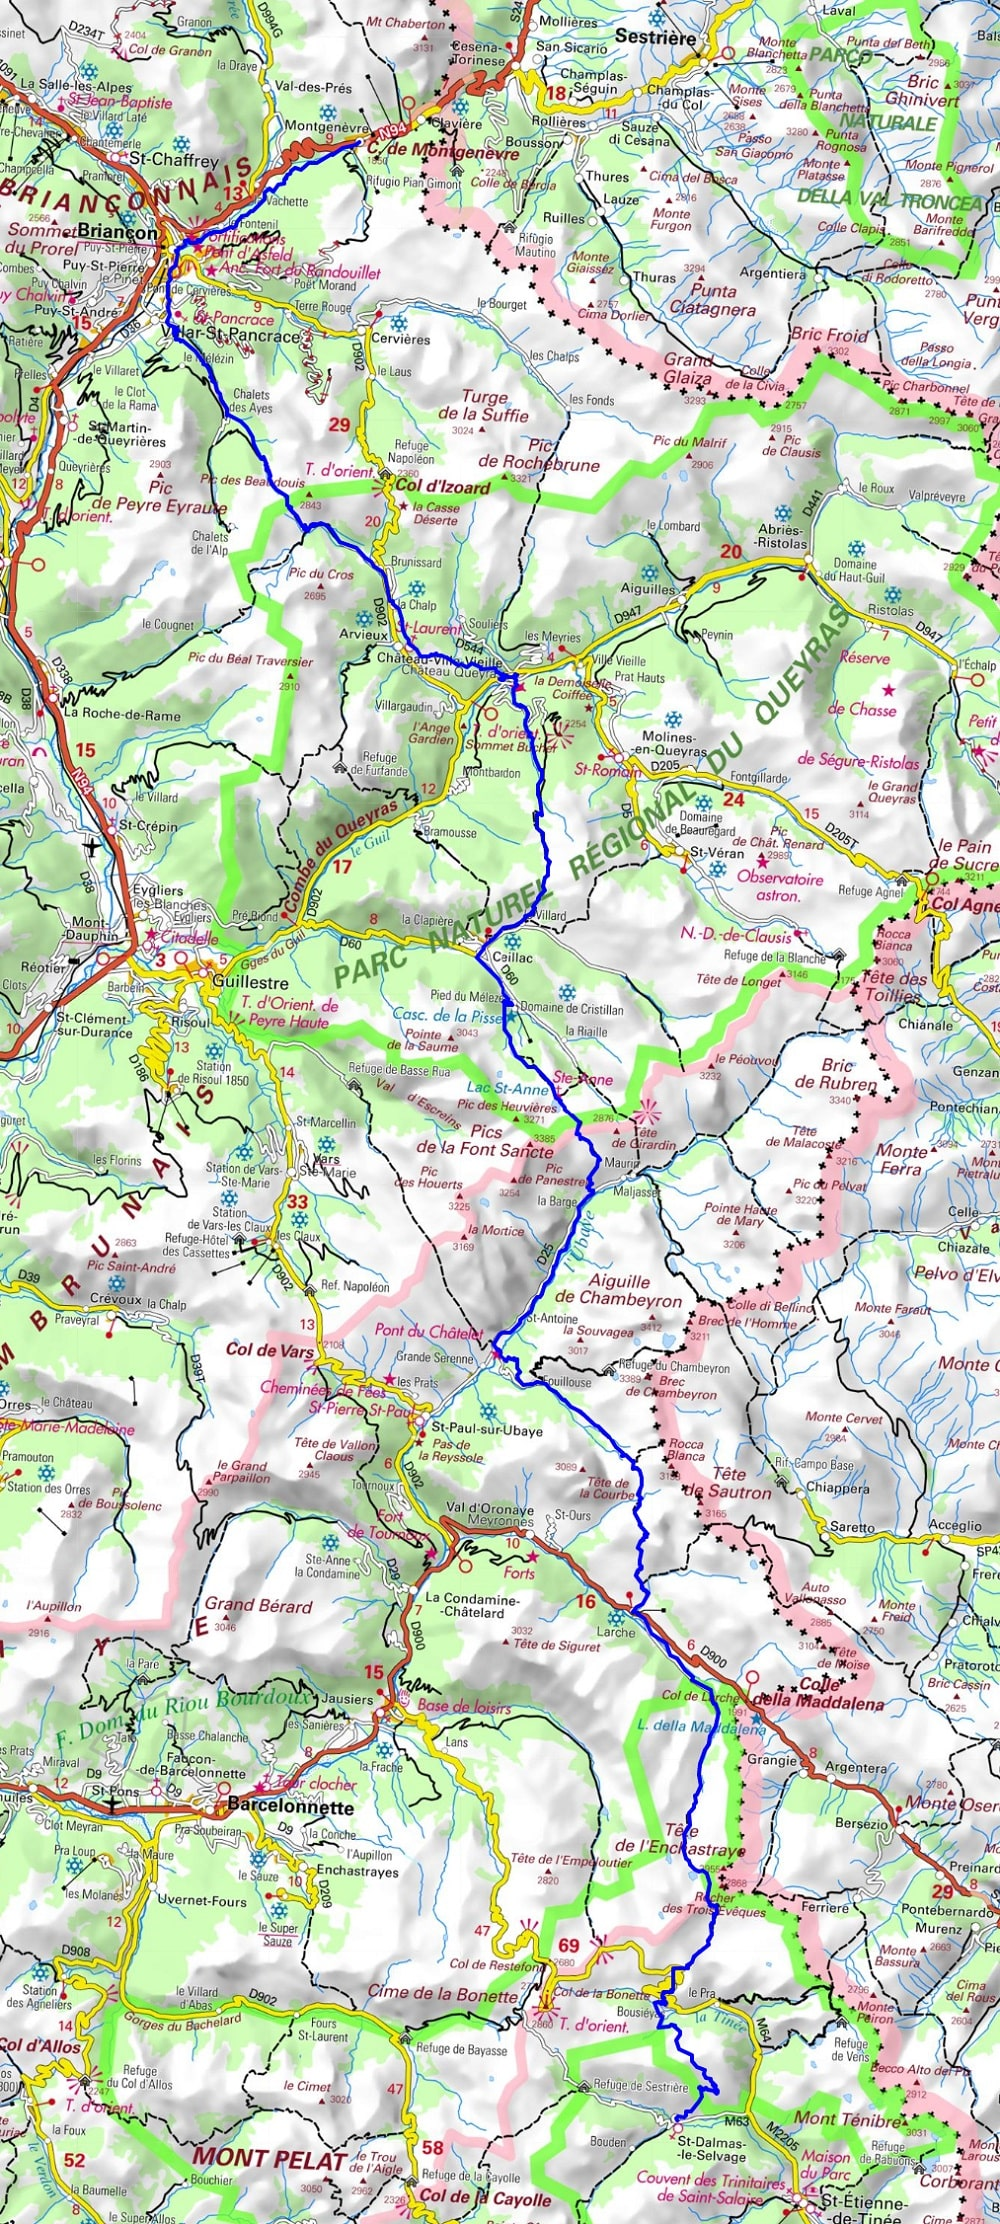 GR5 Hiking from Montgenevre (Hautes-Alpes) to St Dalmas-le-Selvage (Alpes-Maritimes)